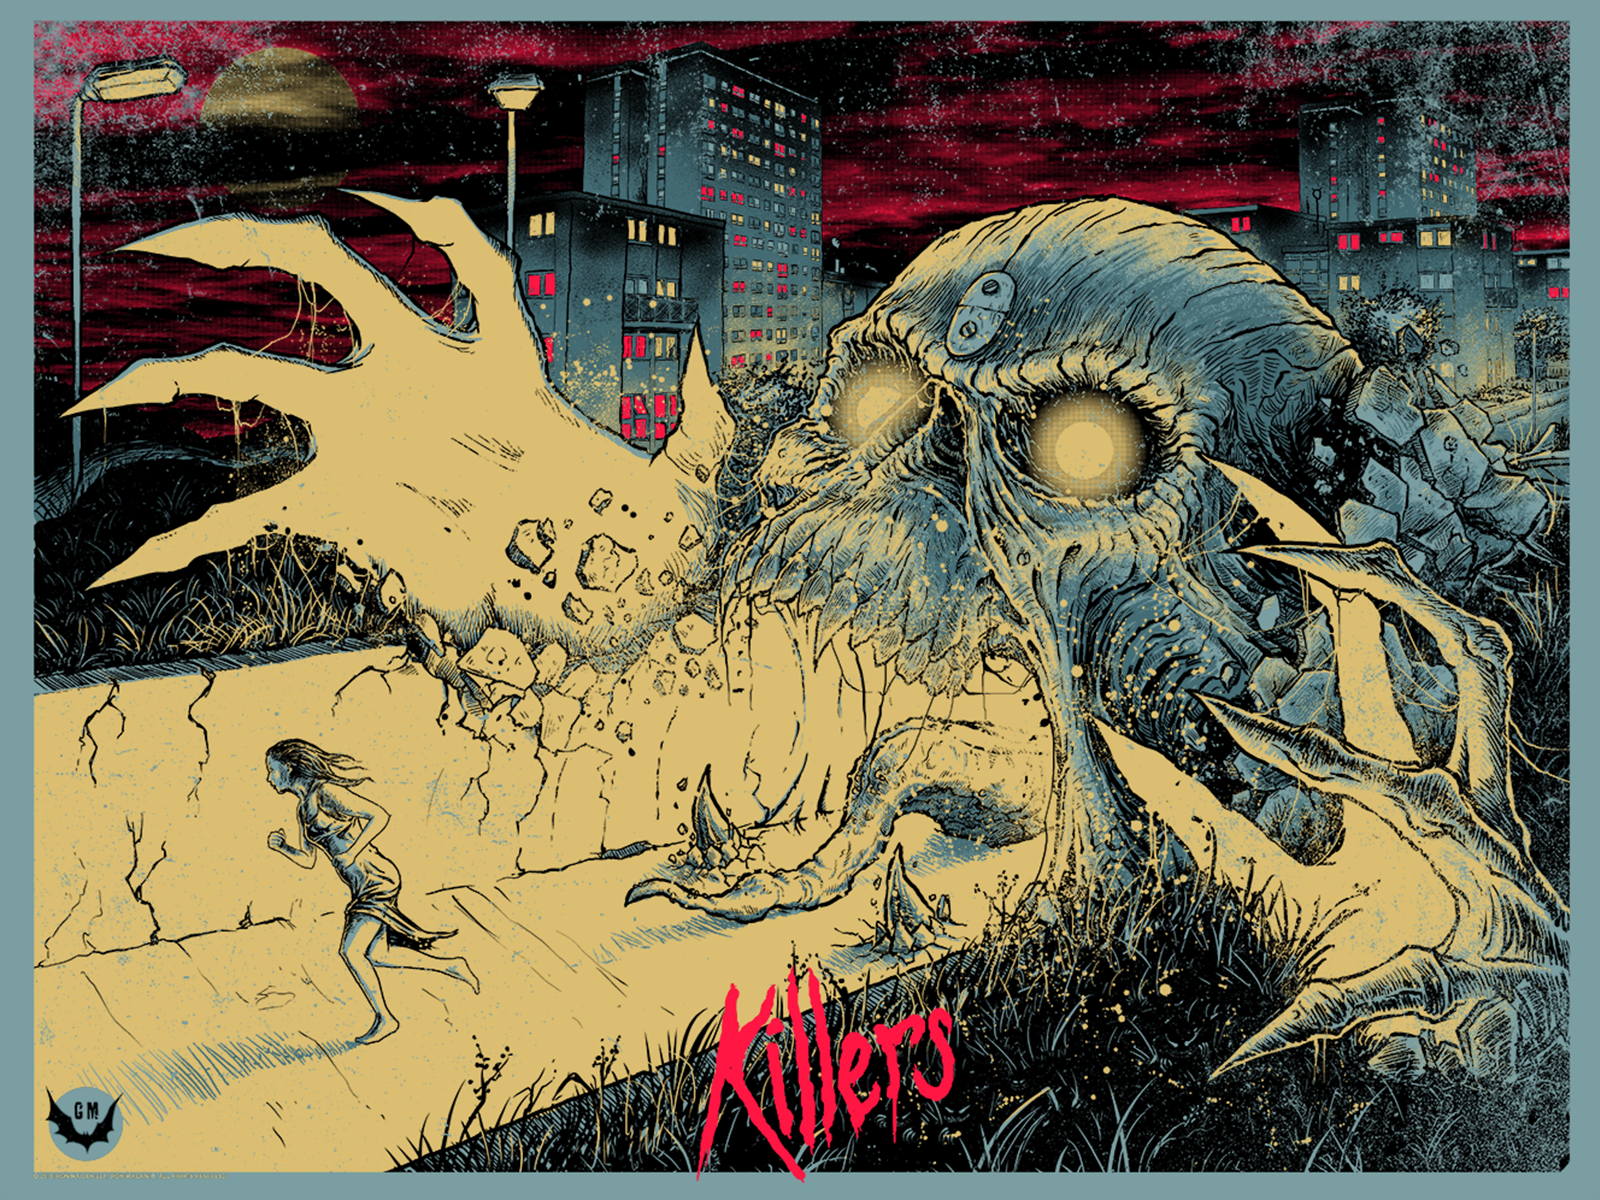 Maiden Collectibles Killers Art Print